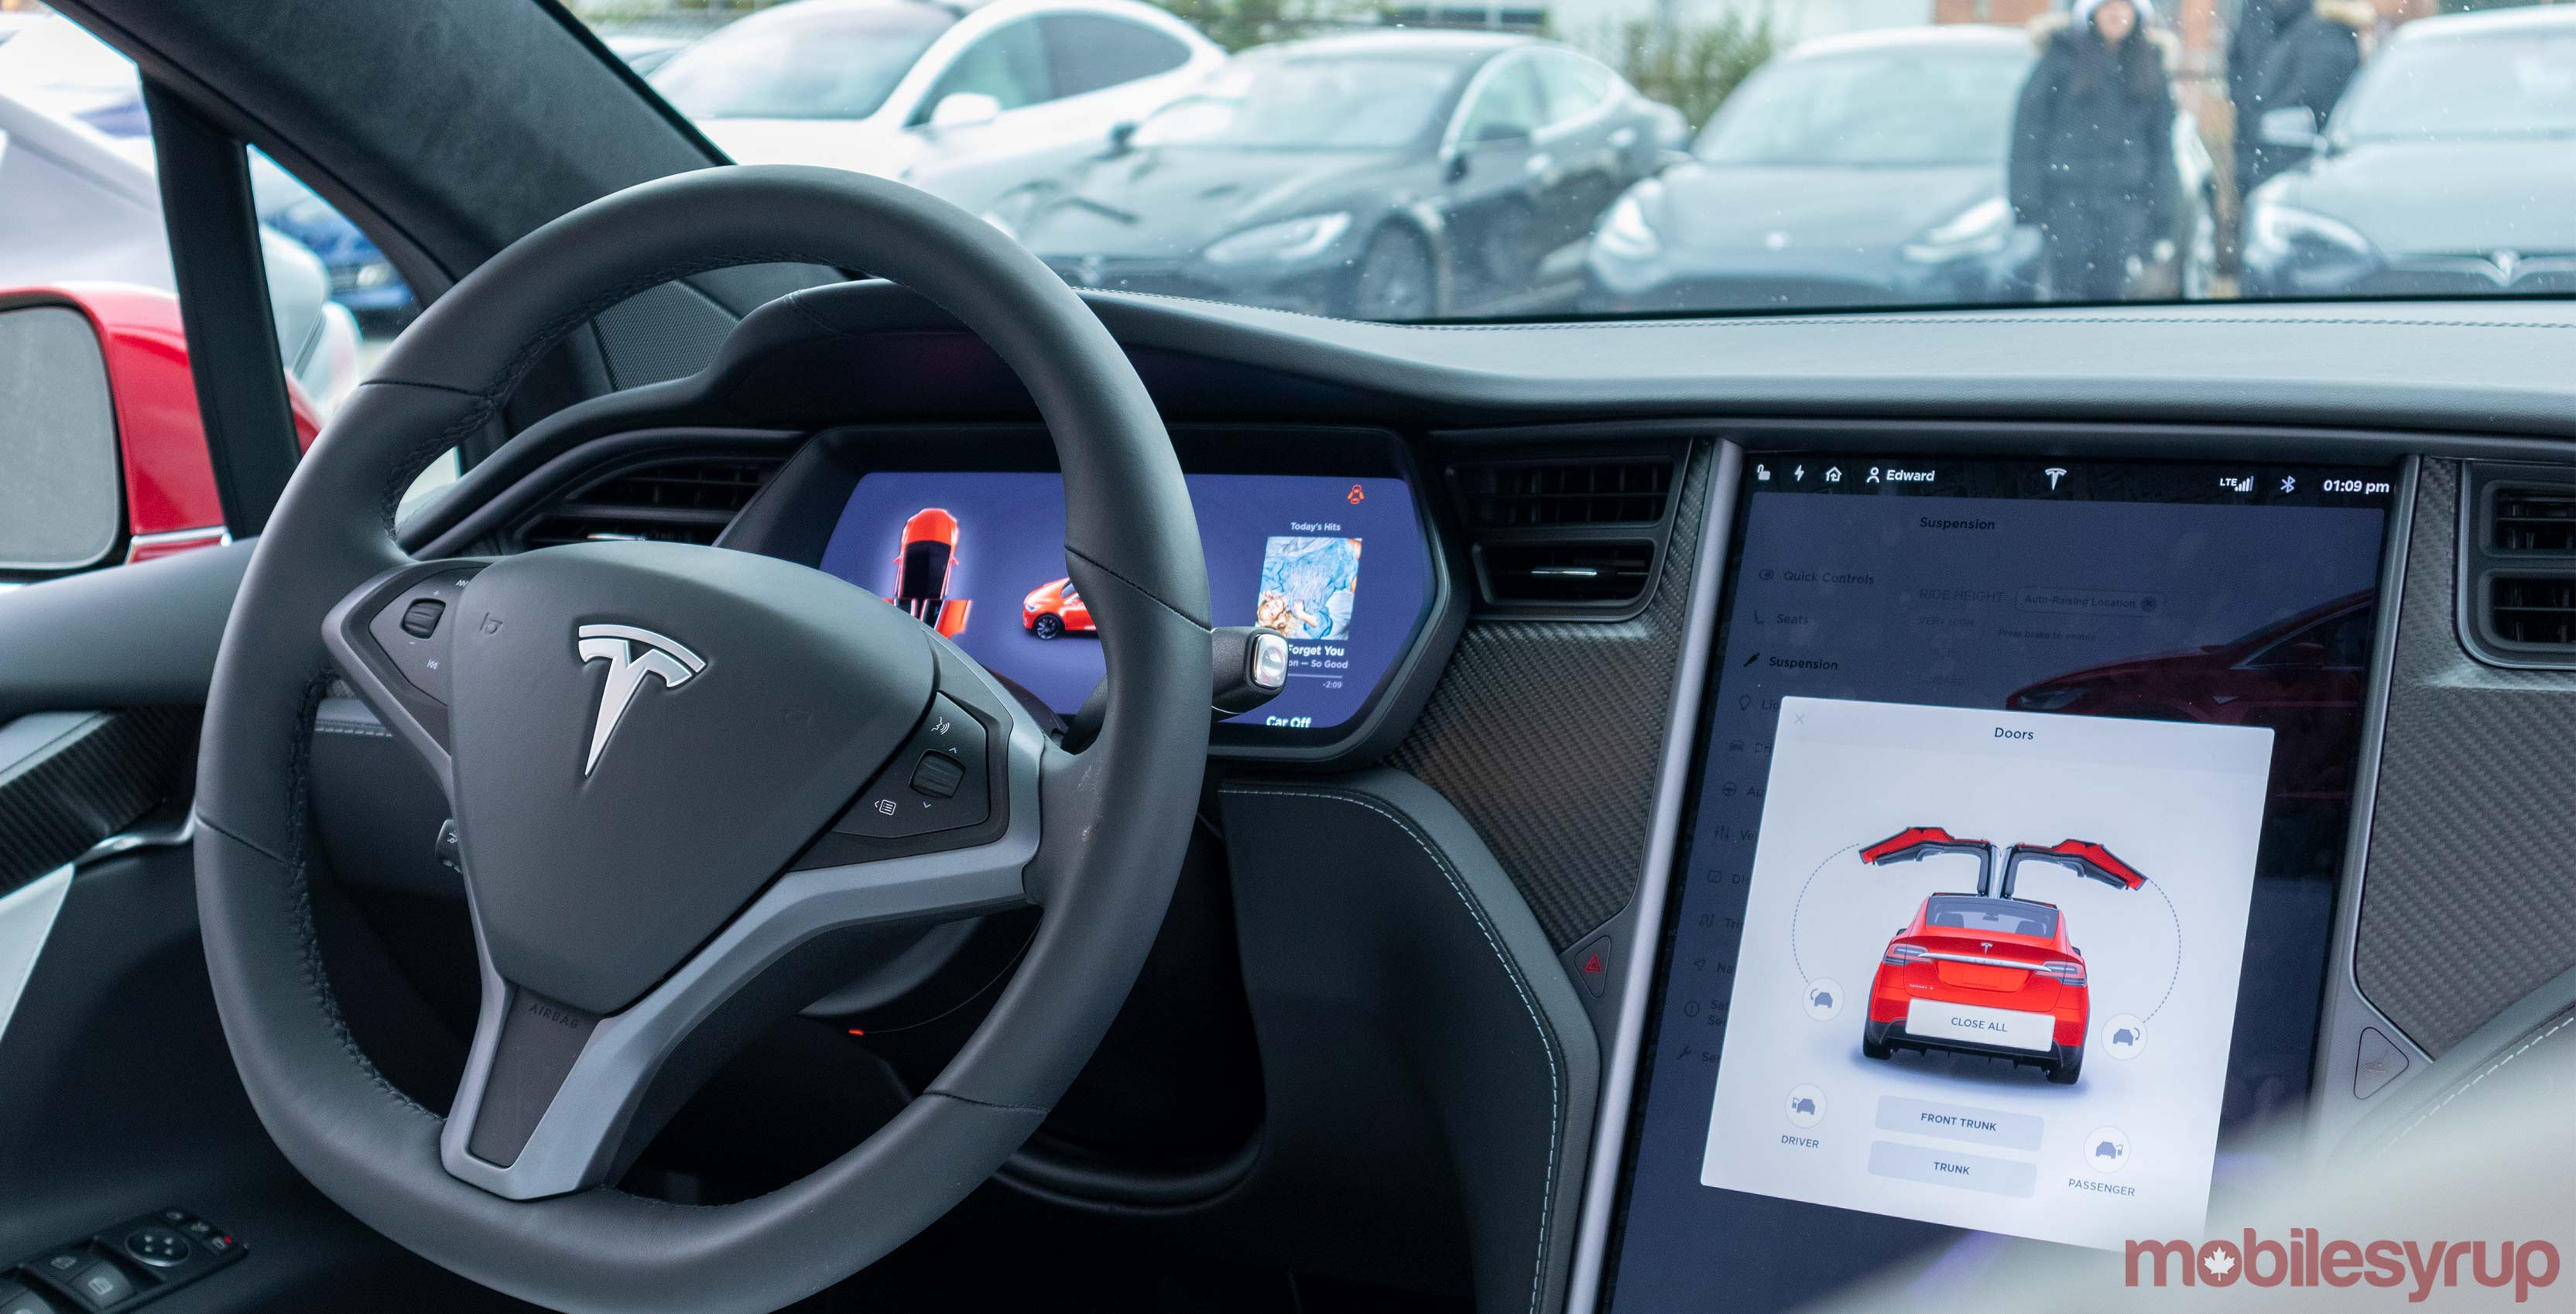 Tesla's in-car browser will be upgrading to Chromium in the future